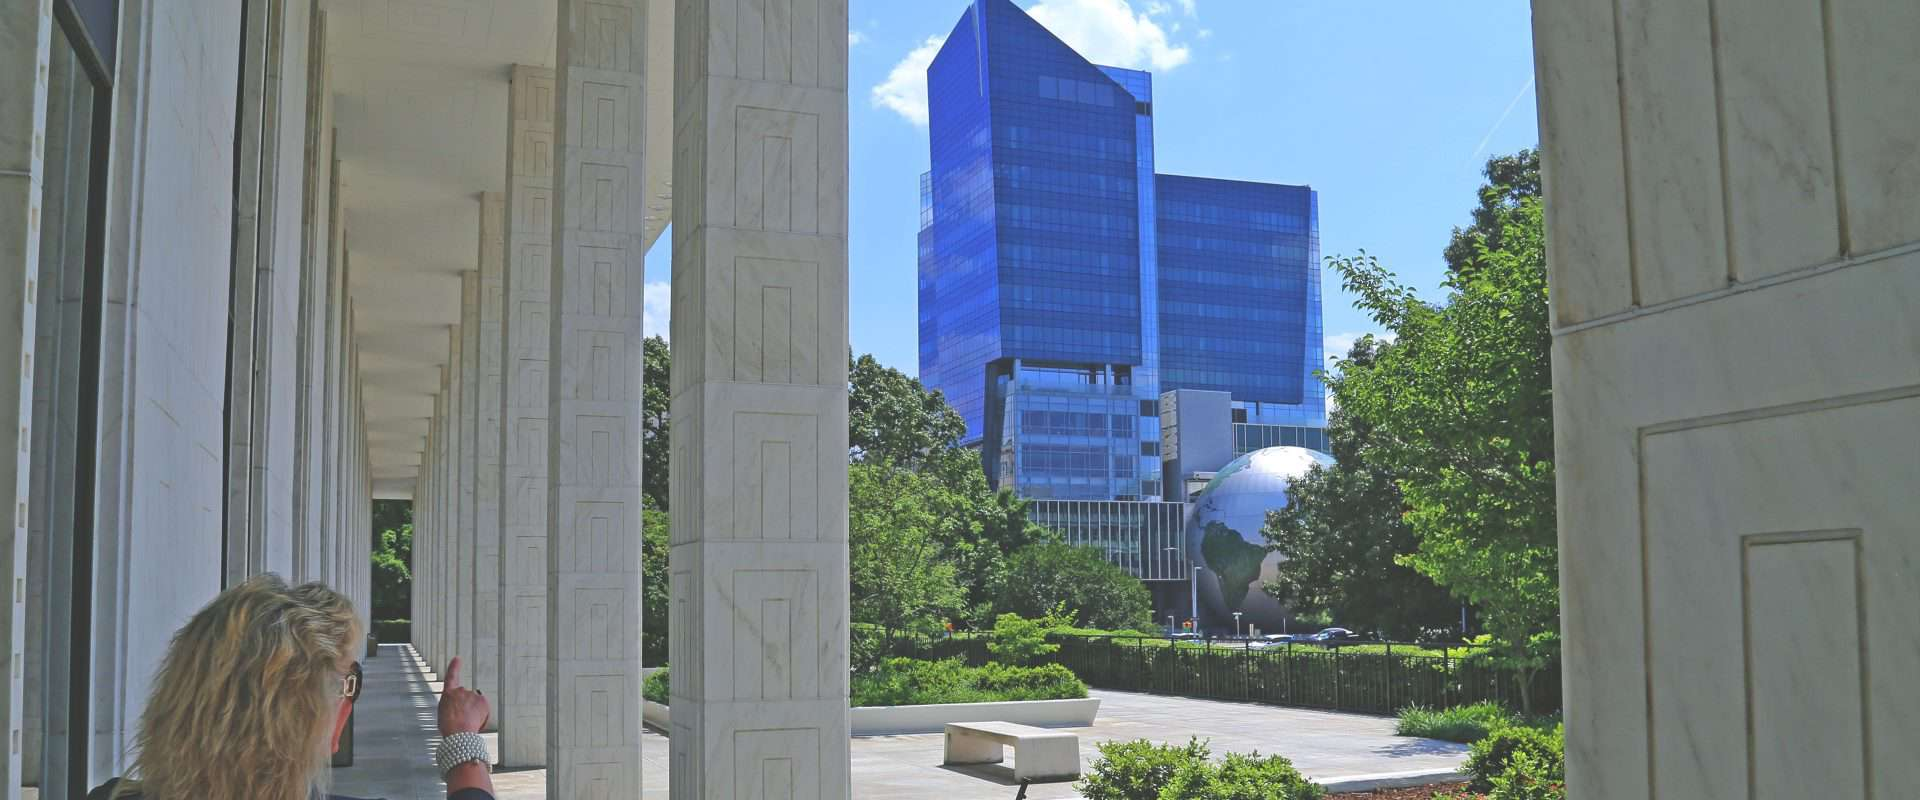 The SECU Building in Downtown Raleigh.